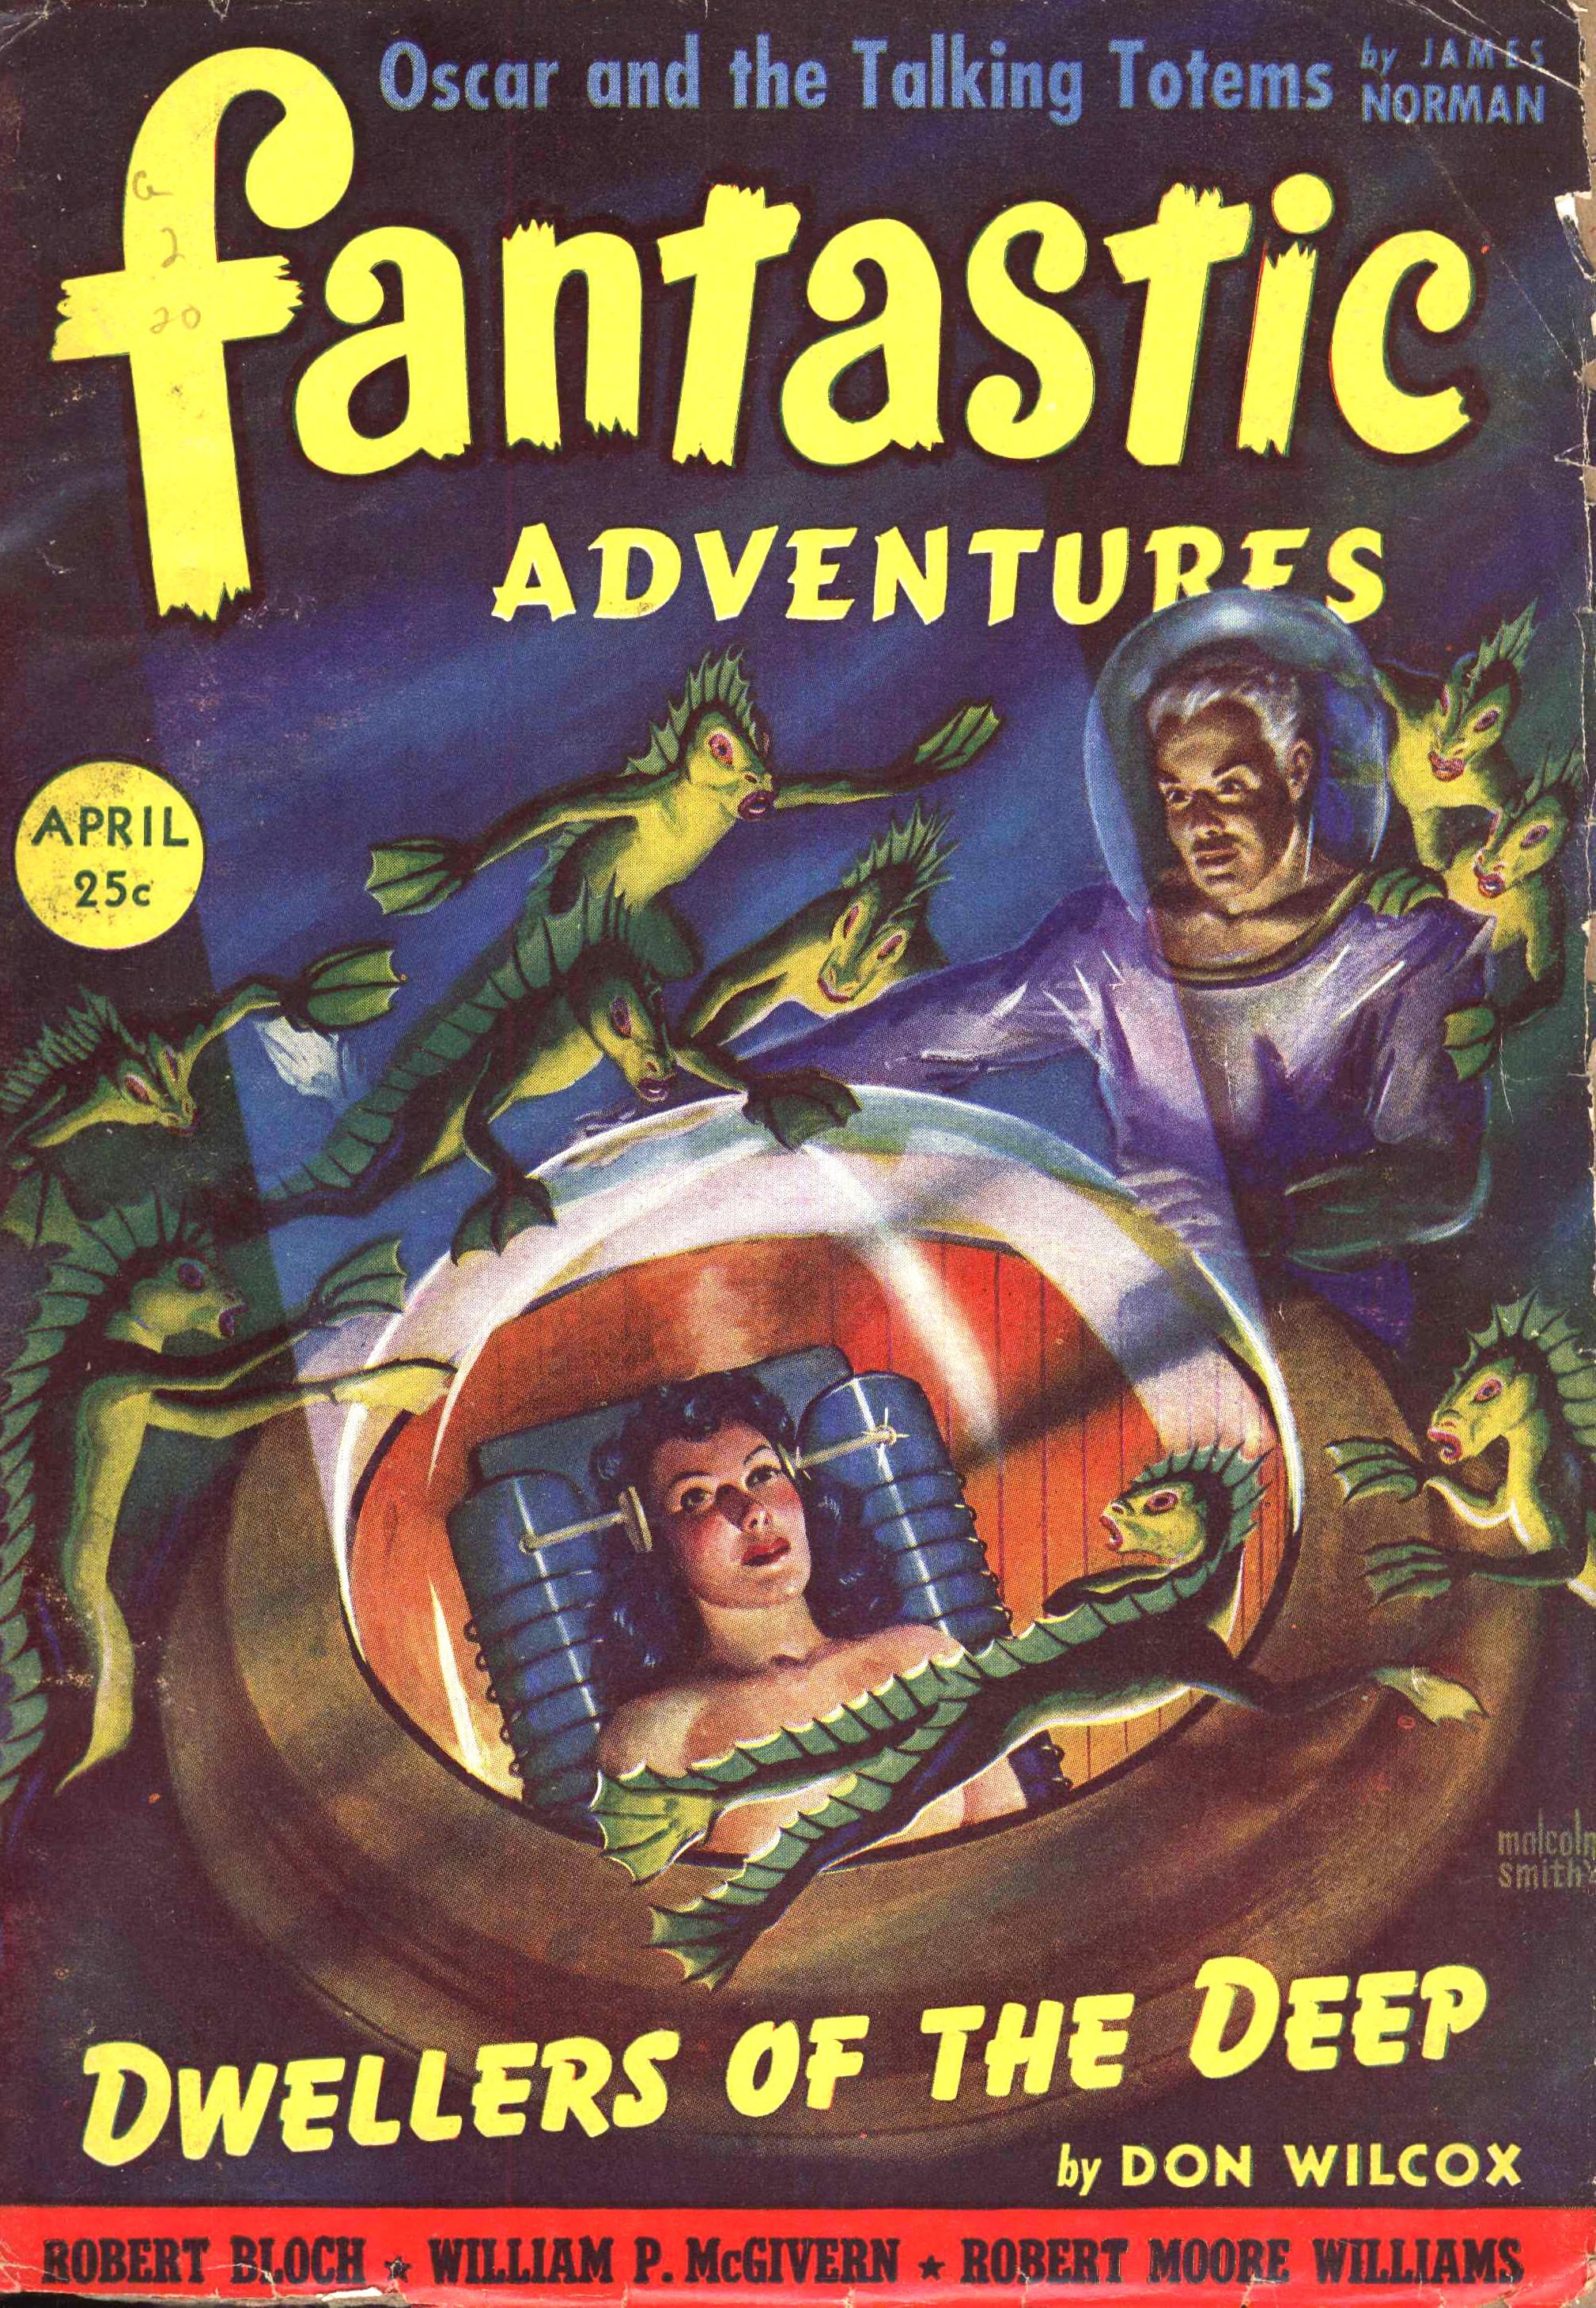 Malcolm Smith cover for Fantastic Adventures, April 1942.